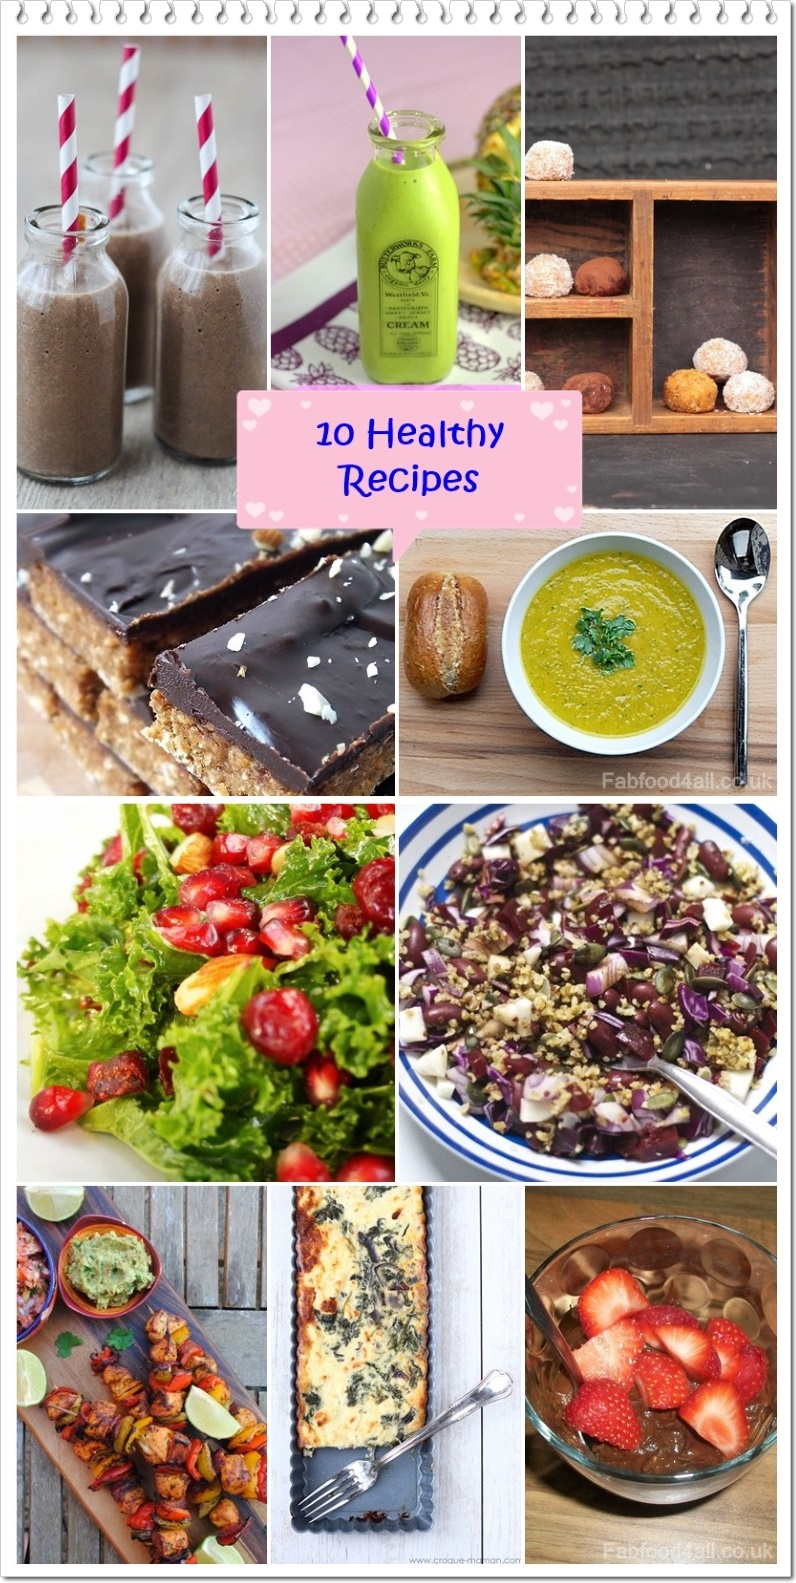 10 Healthy Recipes - @FabFood4All